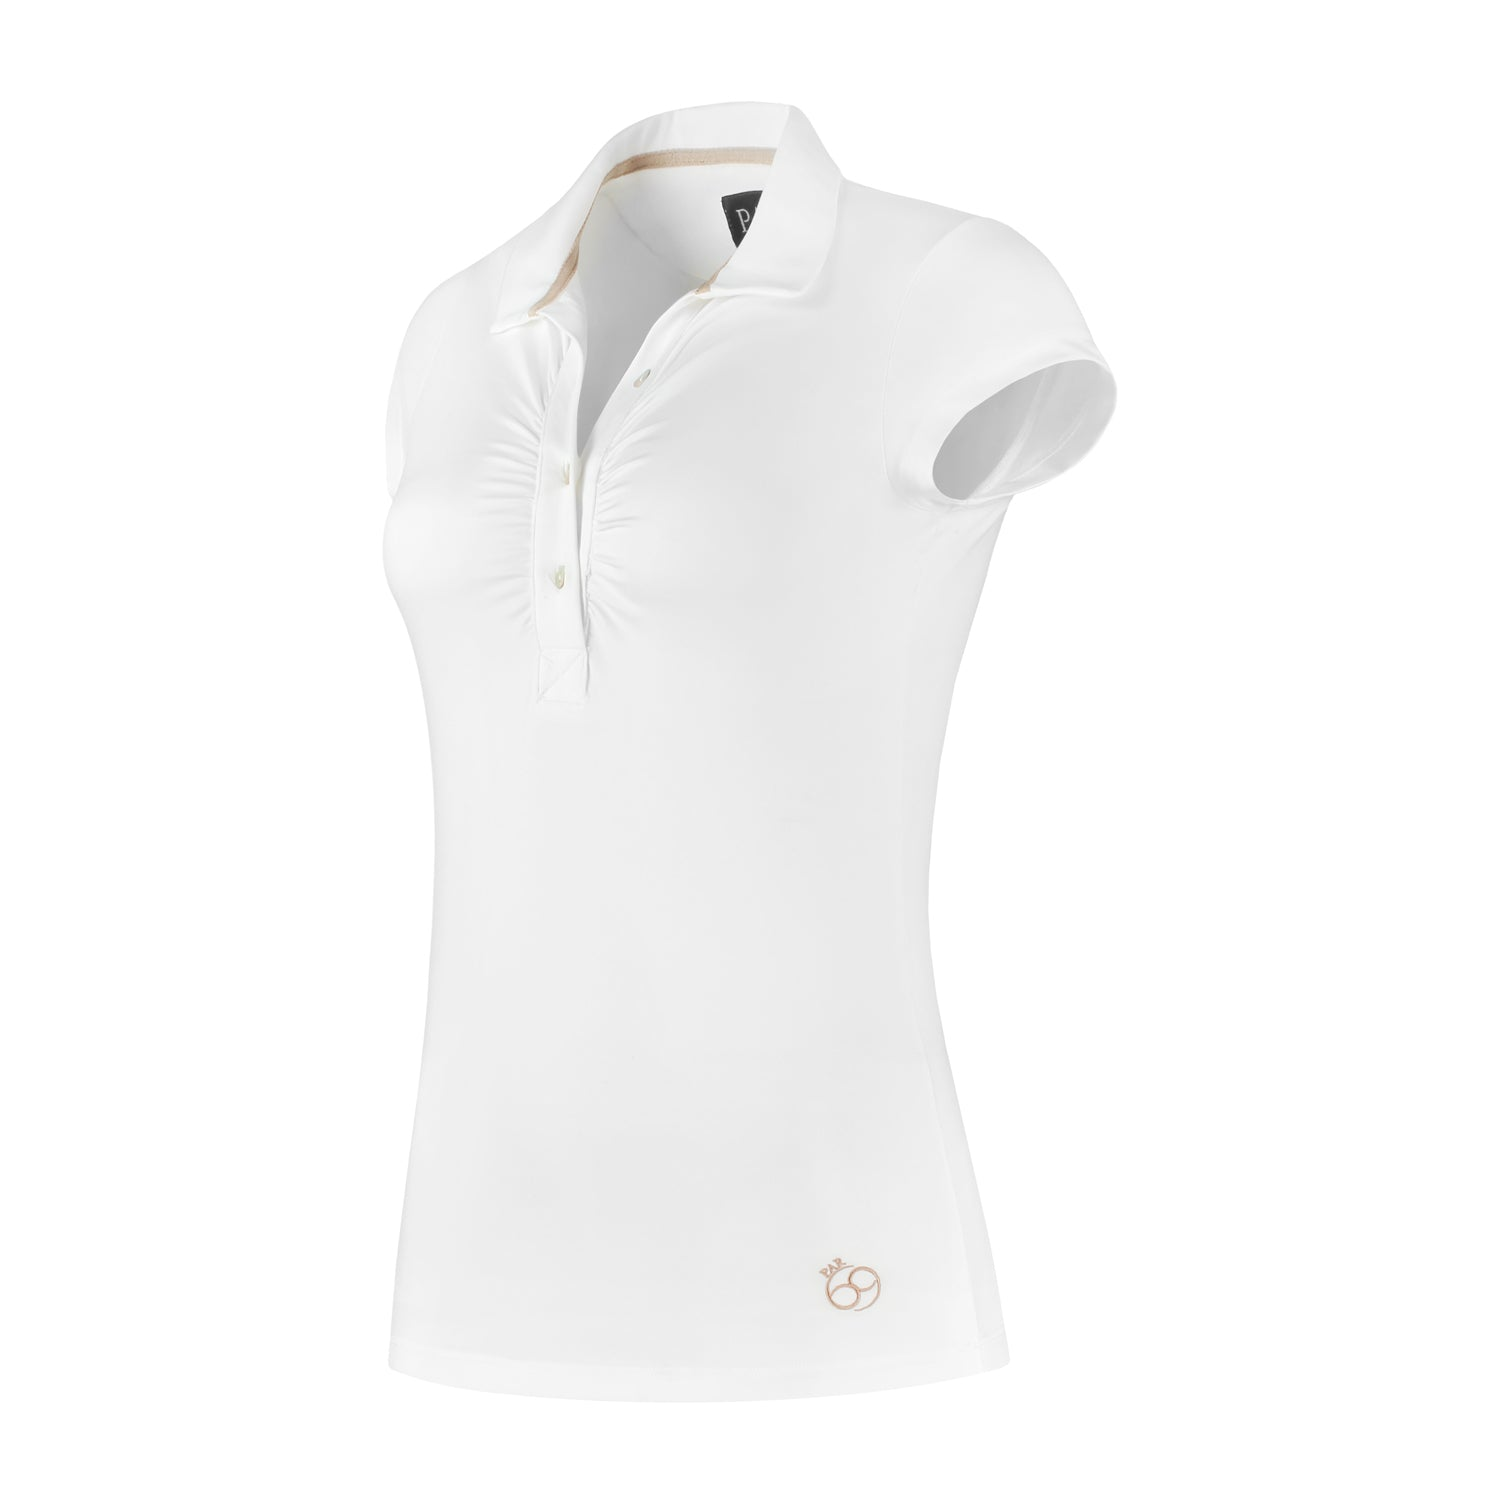 Bien Short Sleeve Polo White